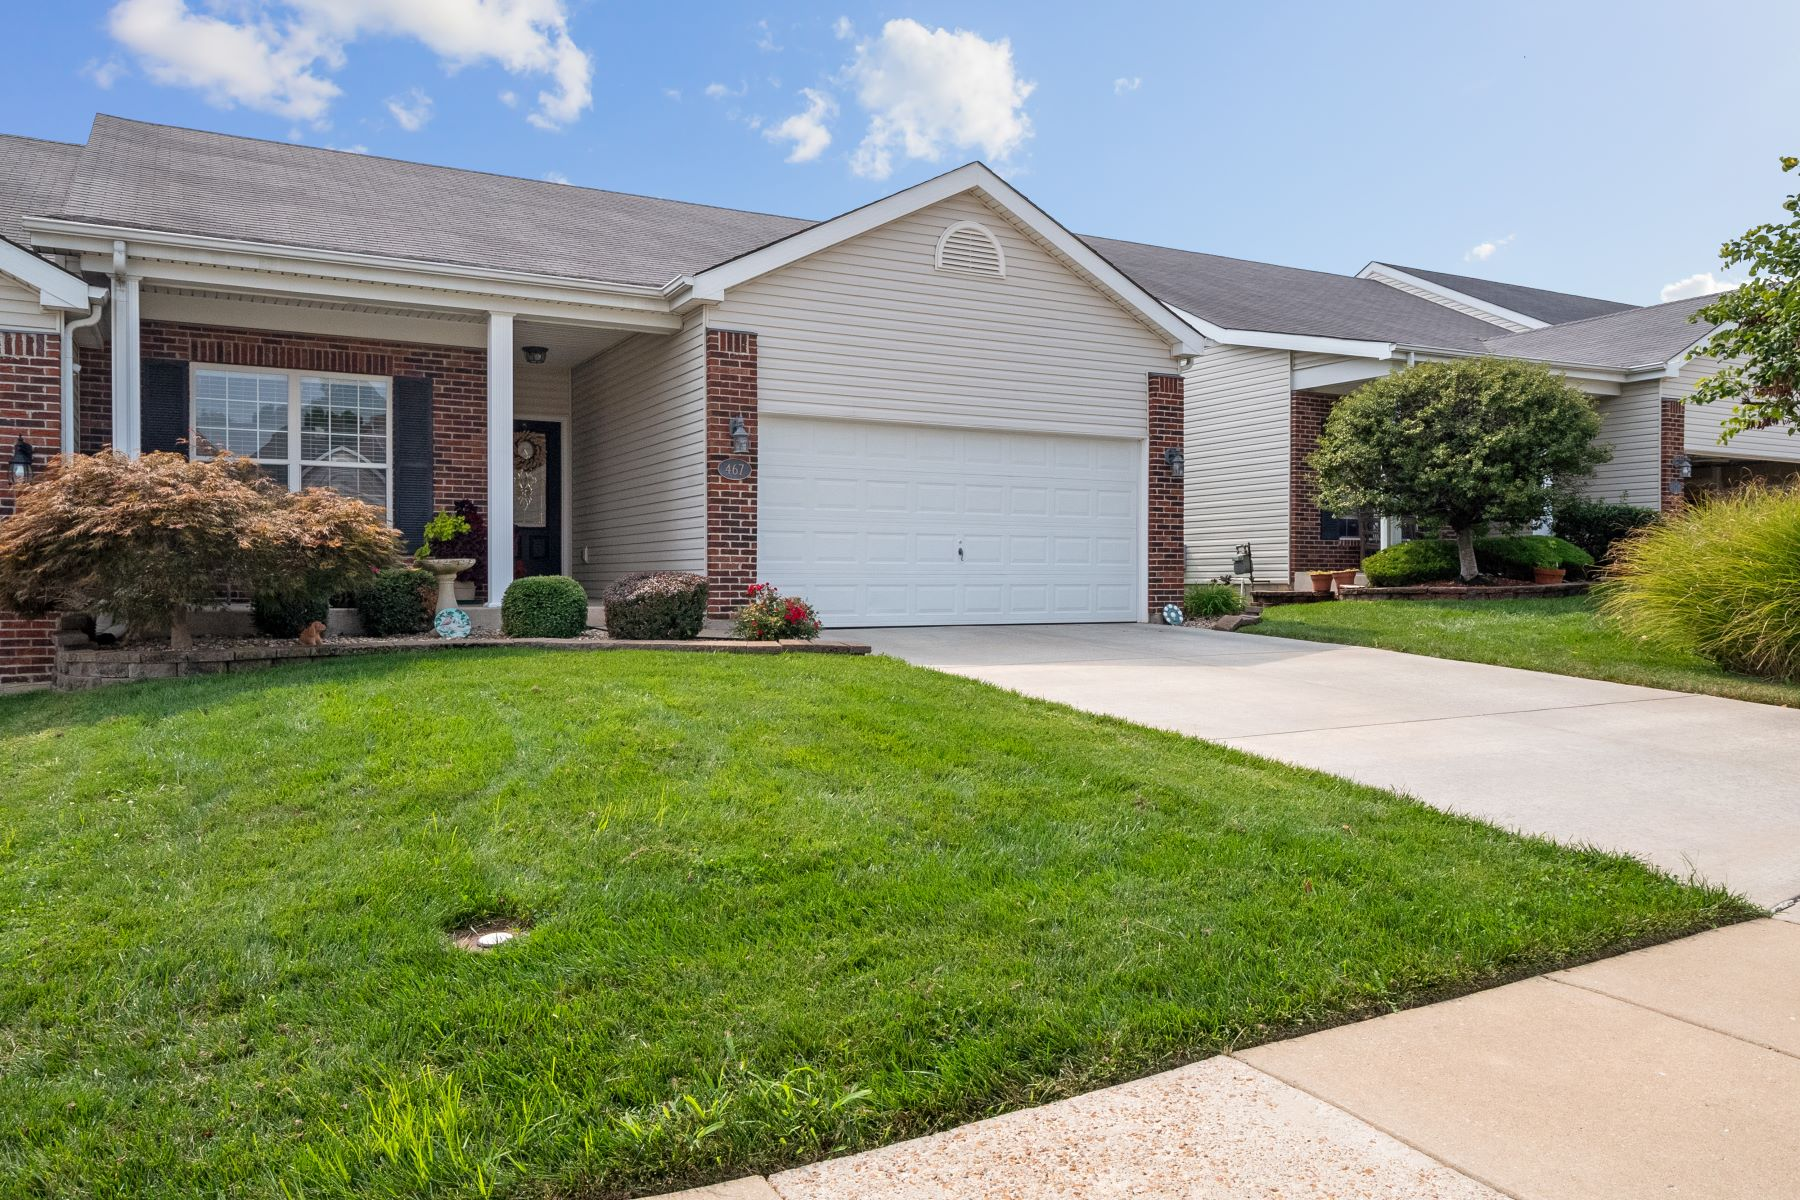 Property for Sale at Charming Montclair Villa 467 Angelique Place St. Charles, Missouri 63303 United States